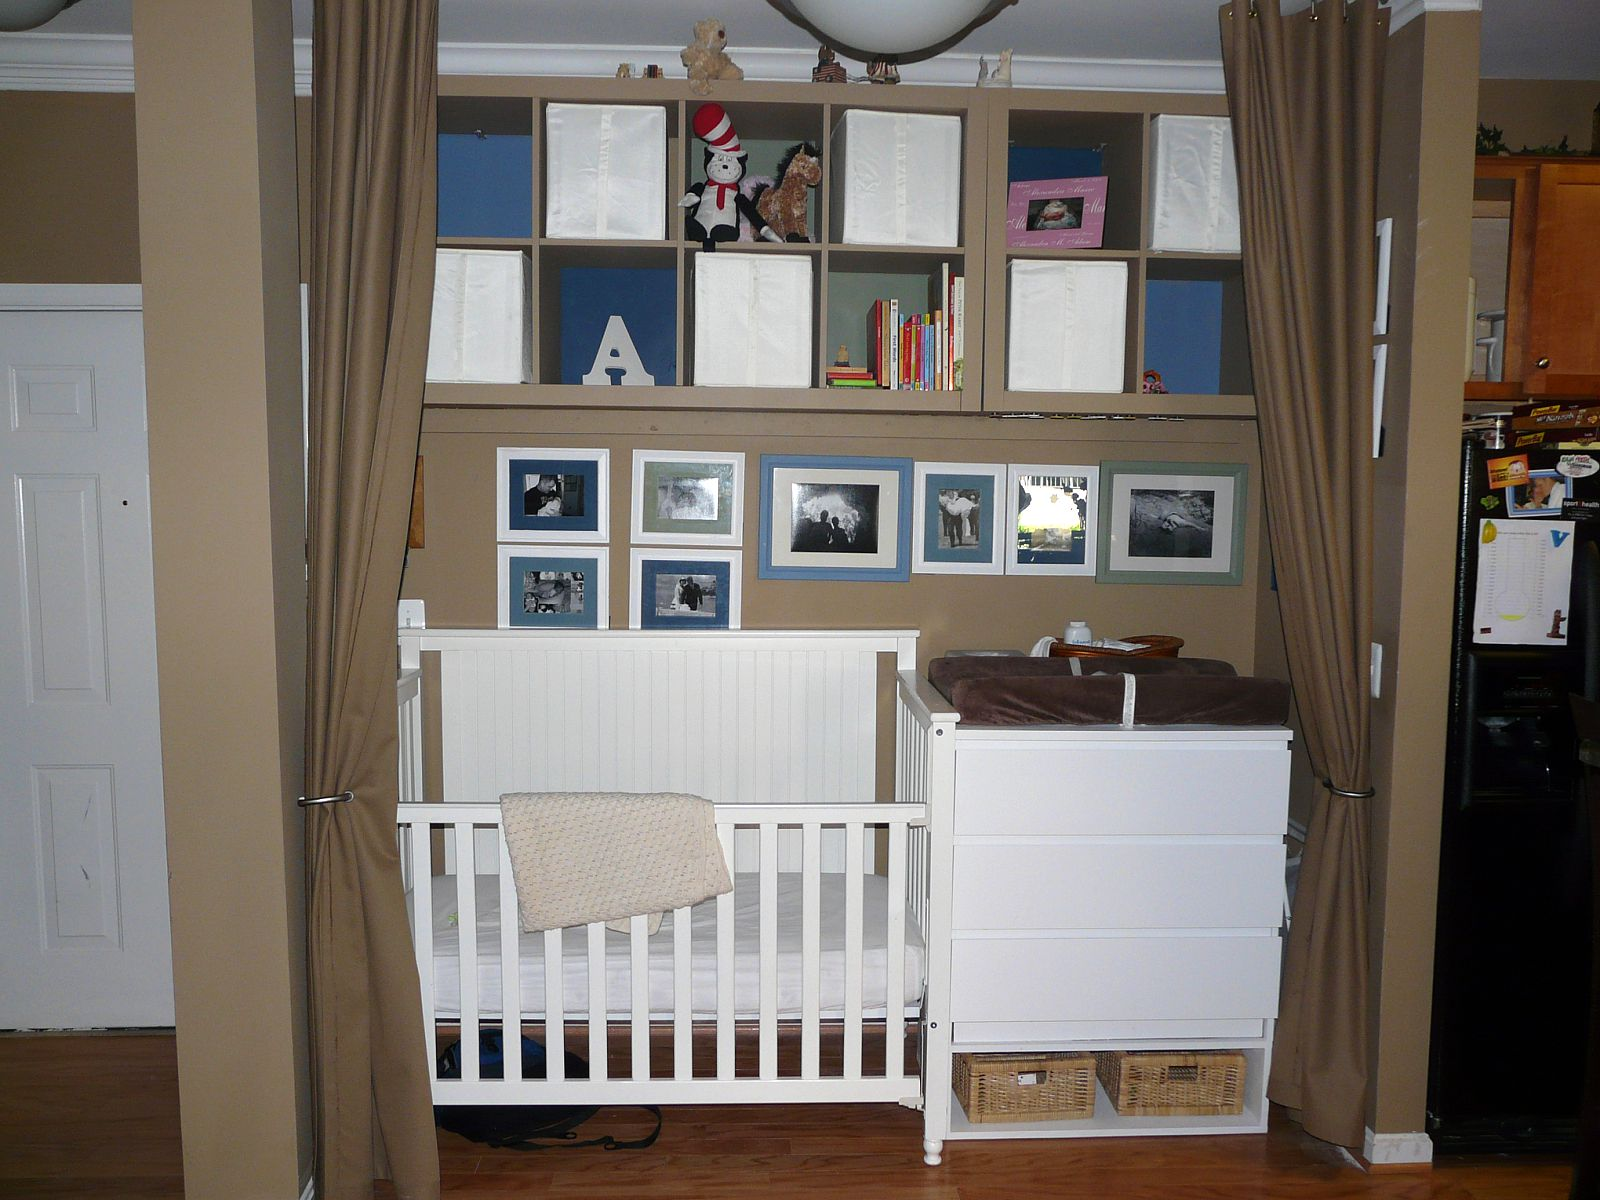 A baby room with ikea hacks - IKEA Hackers